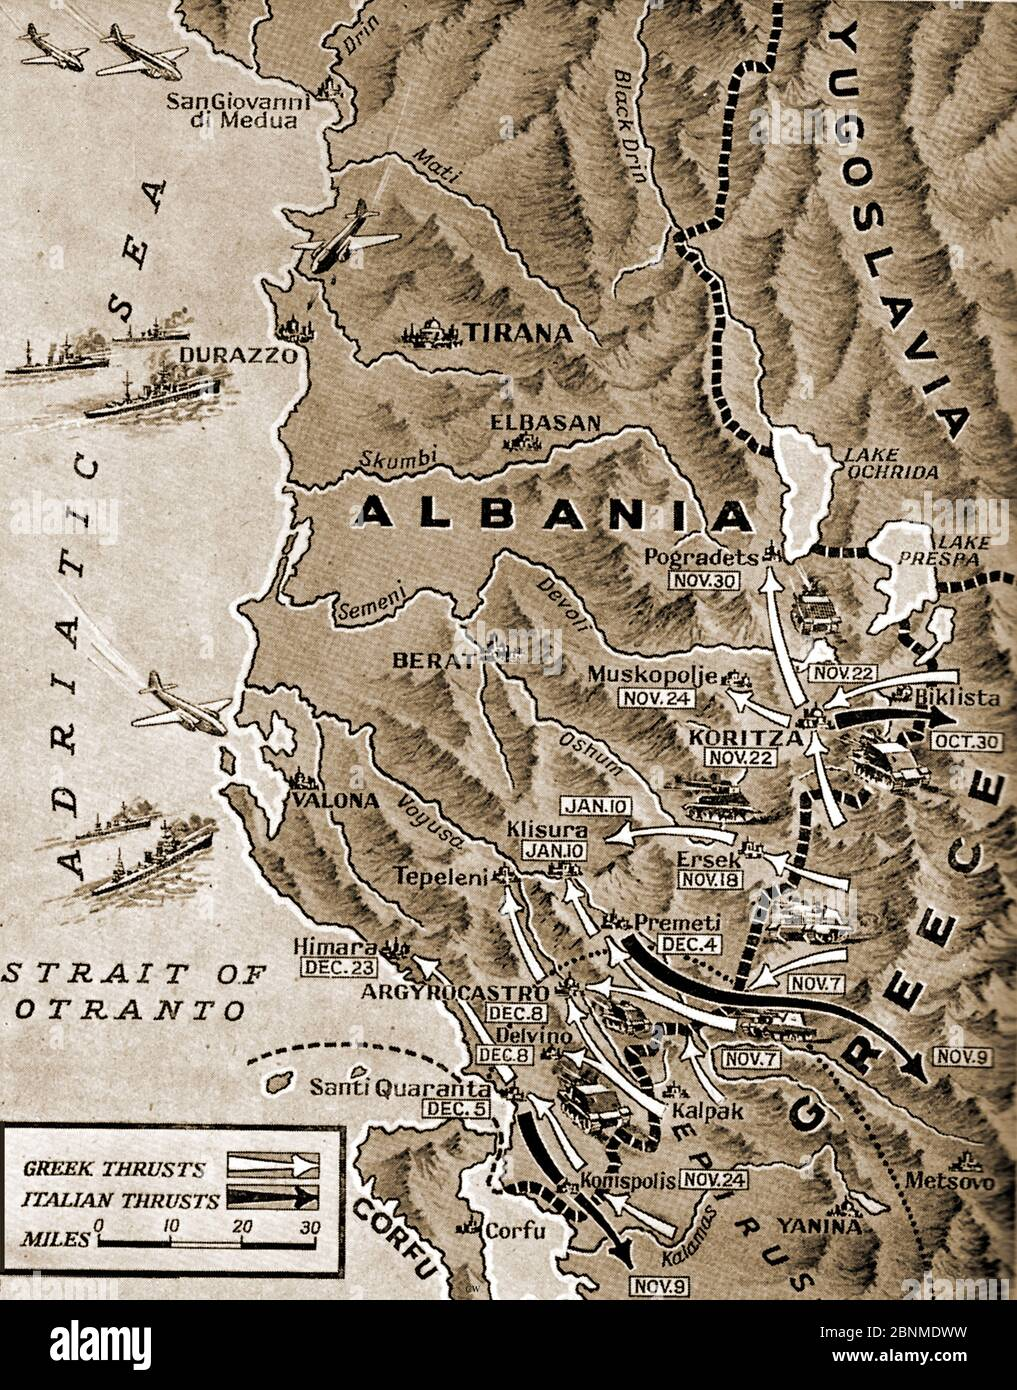 WWII -  A pictorial map from 1941 showing events in the Albanian Campaign 1940-1941. Stock Photo